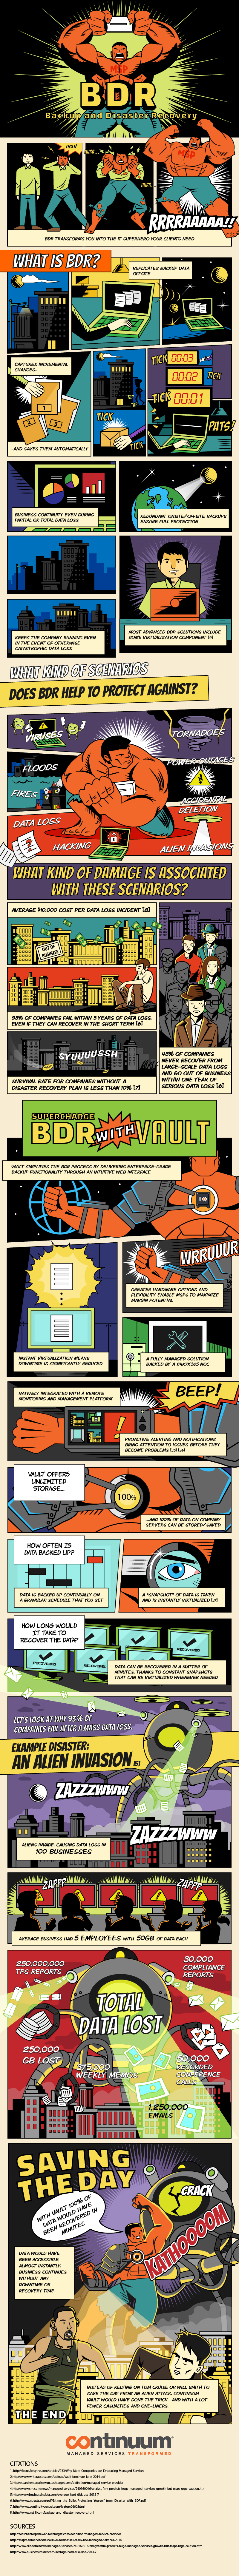 Become The BDR Superhero Your Clients Need